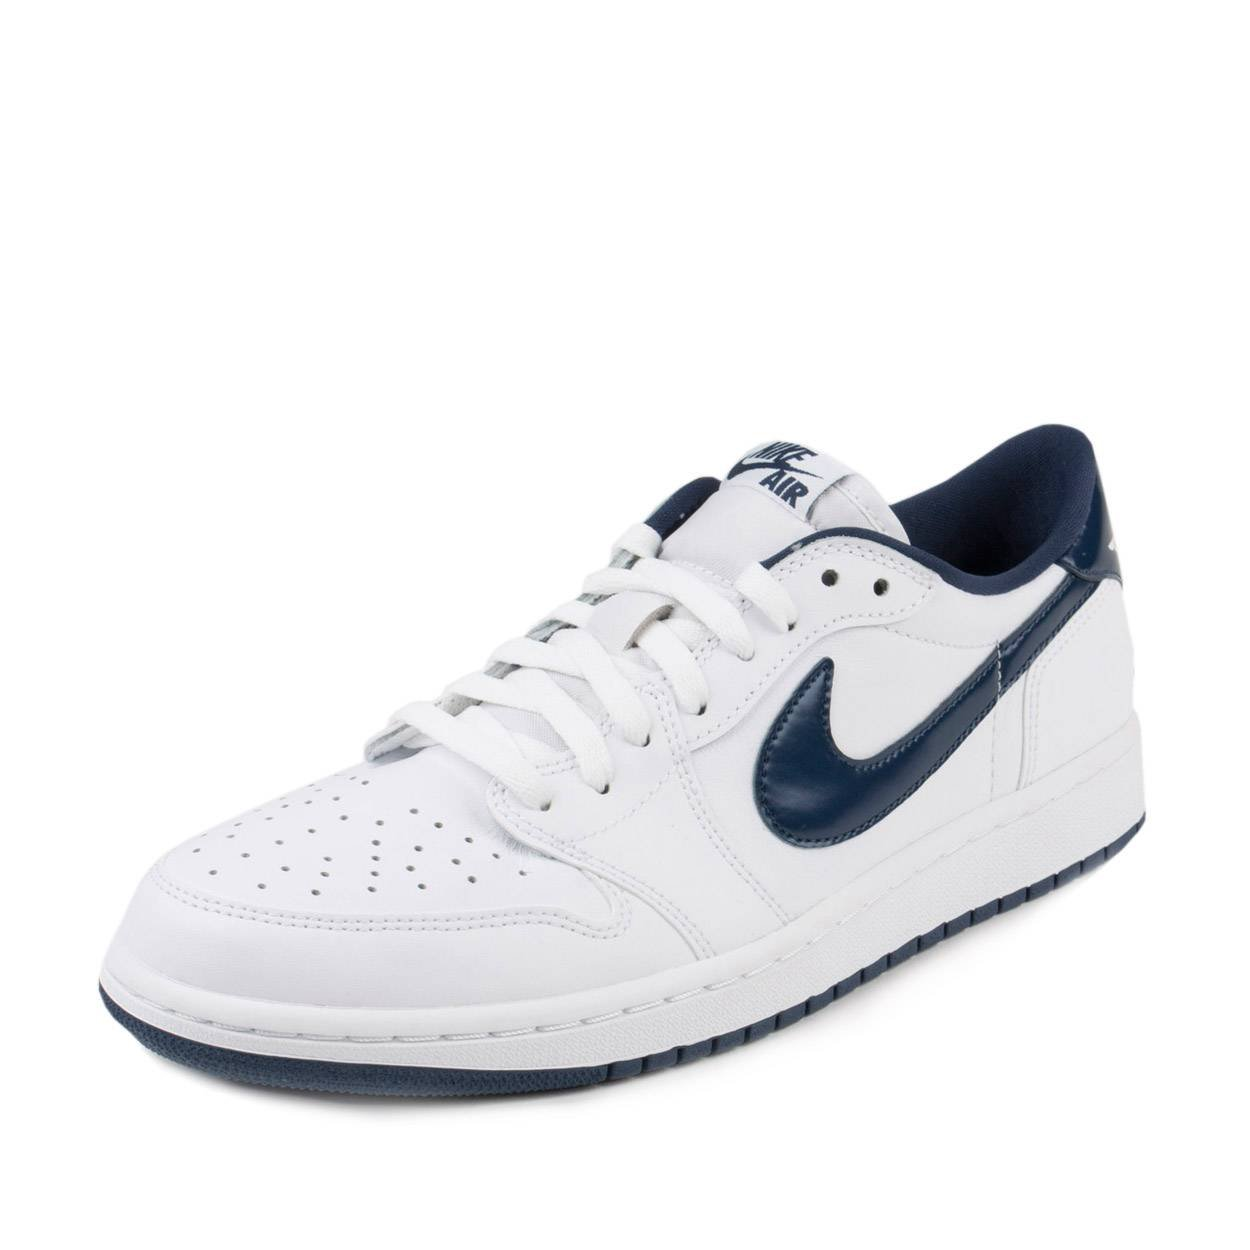 new style 7f434 dc1d7 Galleon - Nike Jordan Men s Air Jordan 1 Low Basketball Shoes (11 M US,  White Midnight Navy)